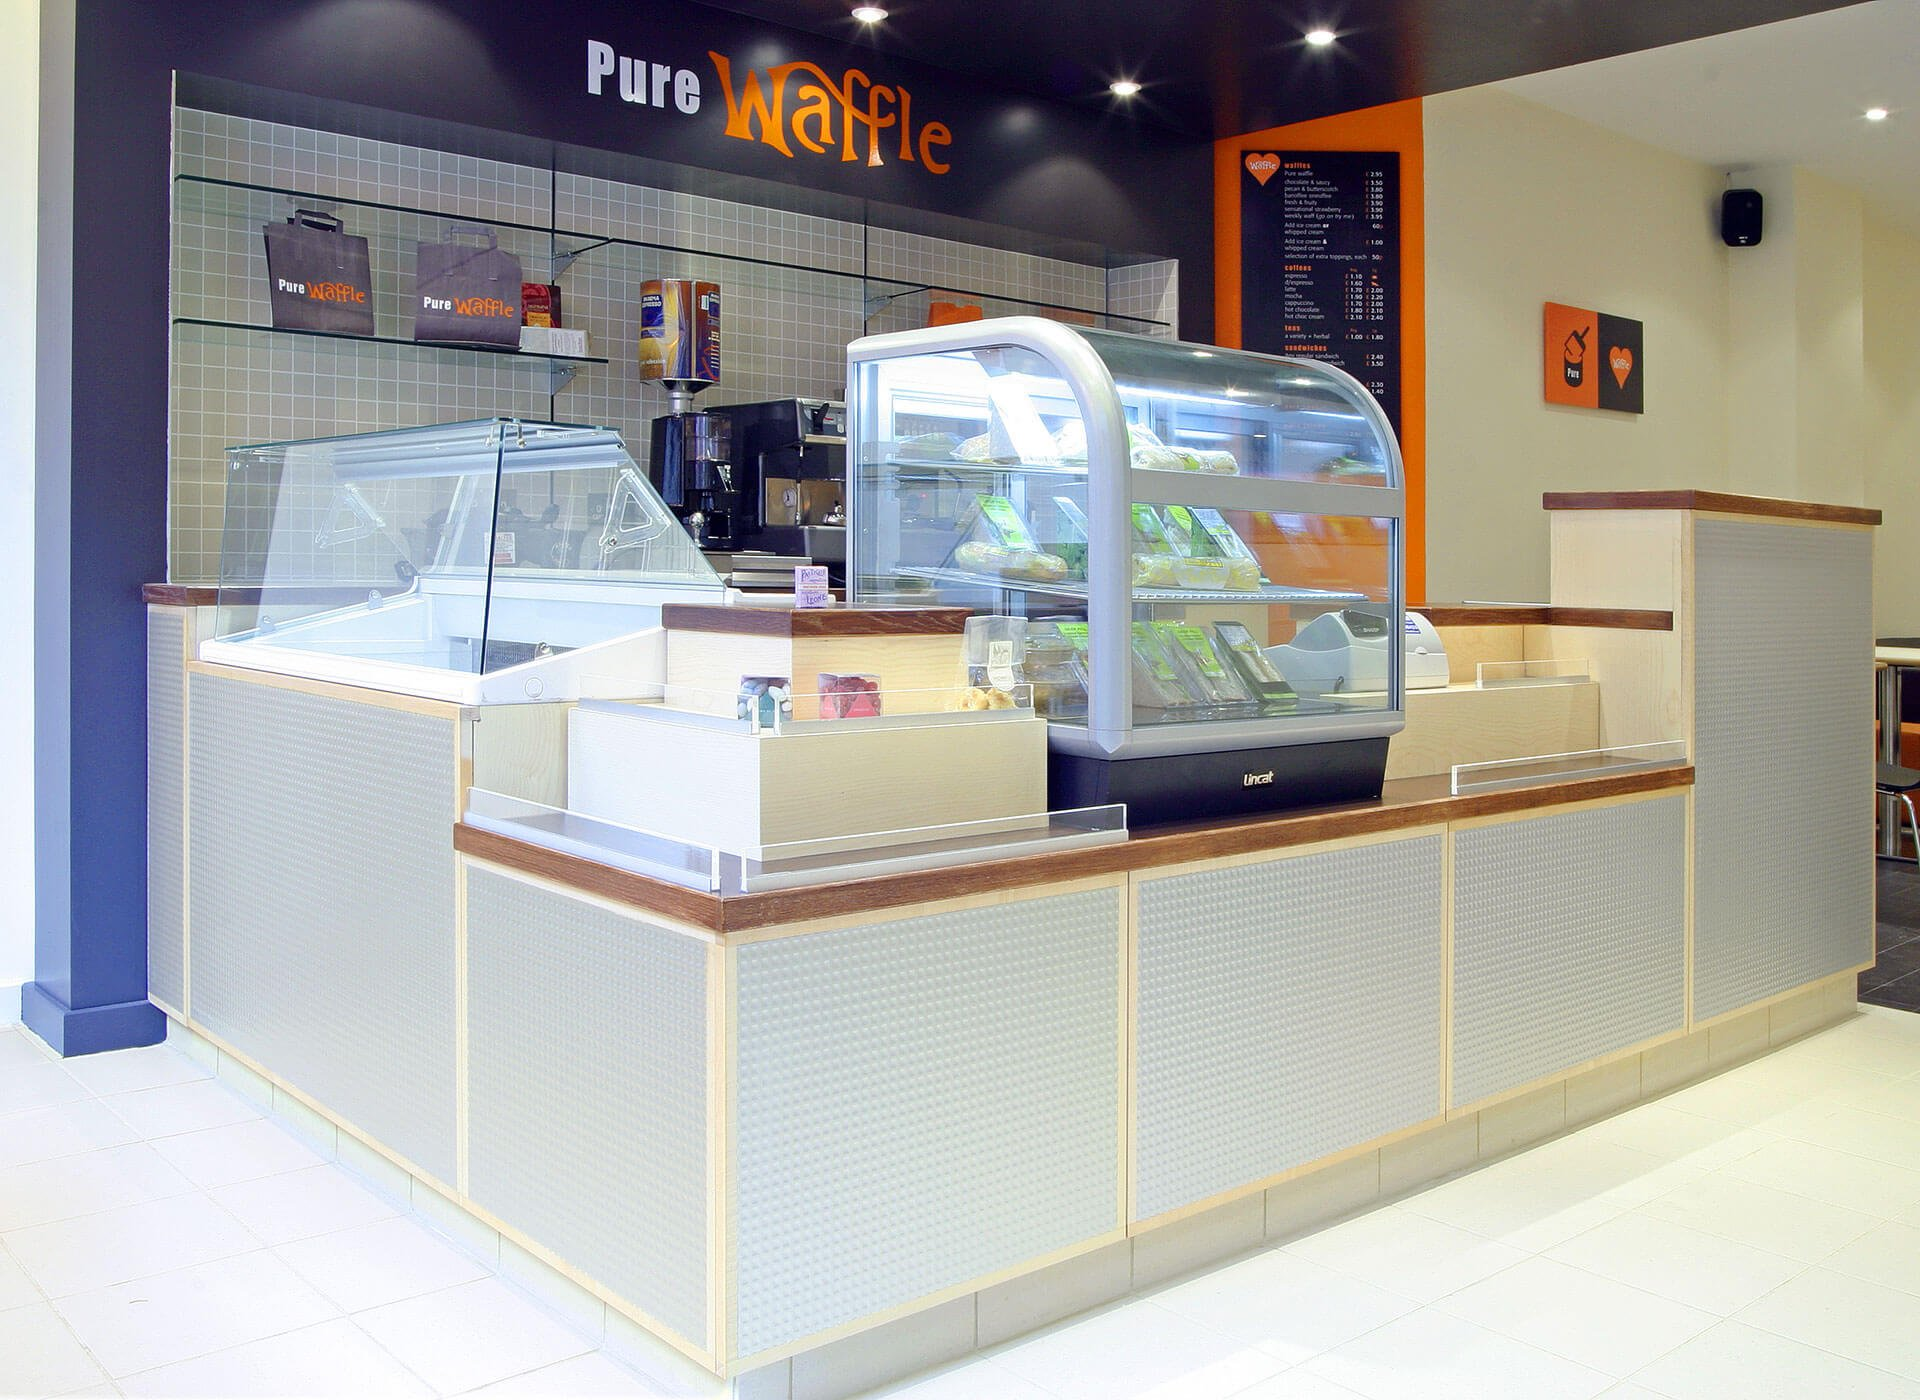 renovated counters